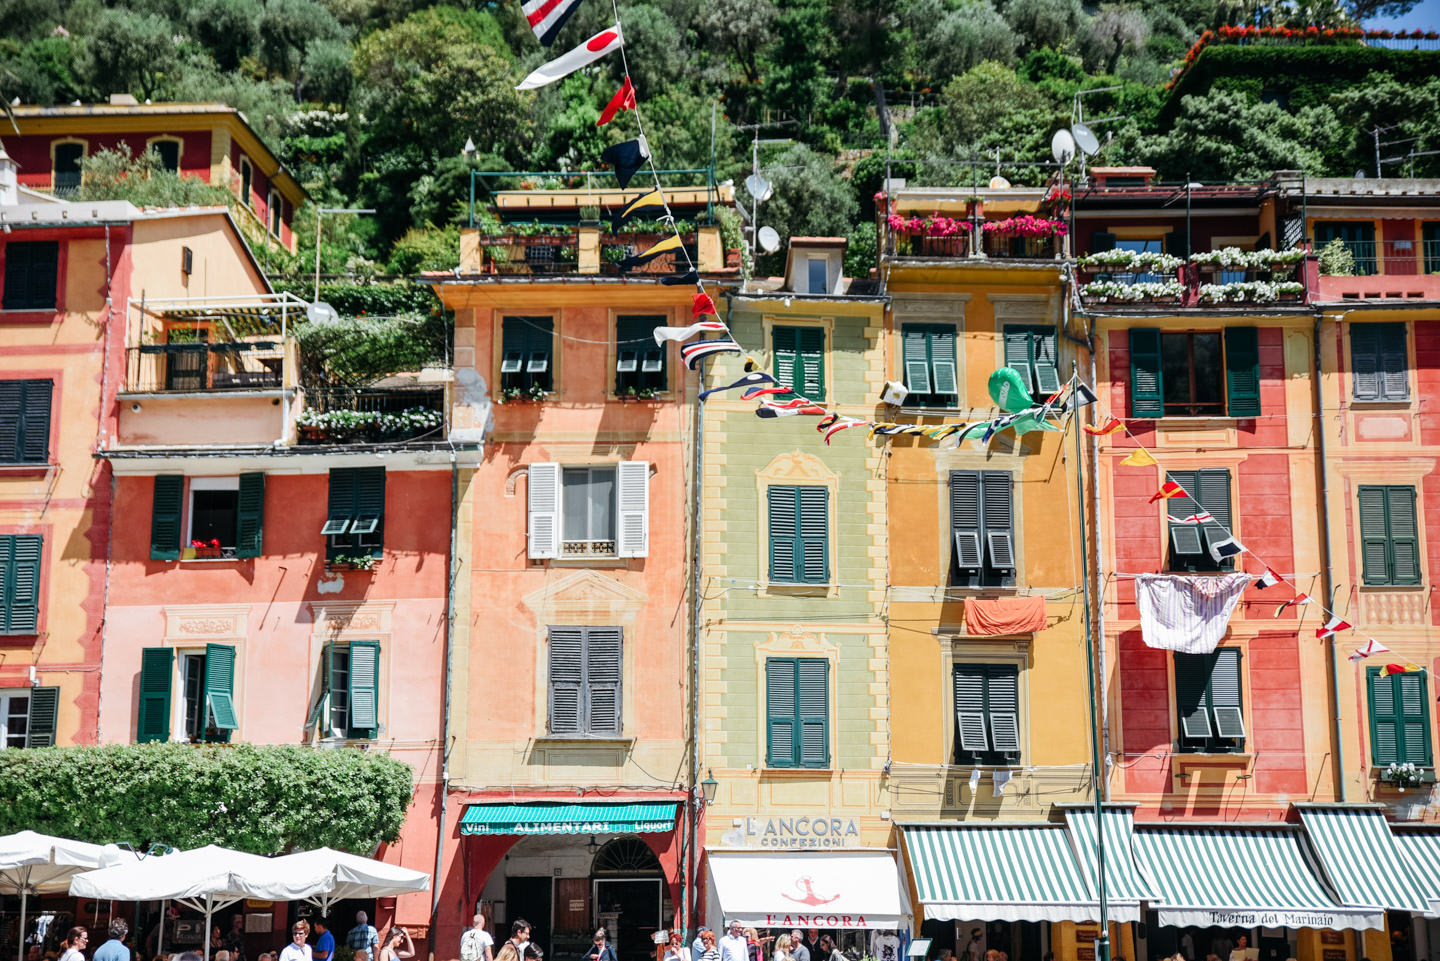 Blog-Mode-And-The-City-Lifestyle-Italie-Portofino-Belmond-Hotel-2